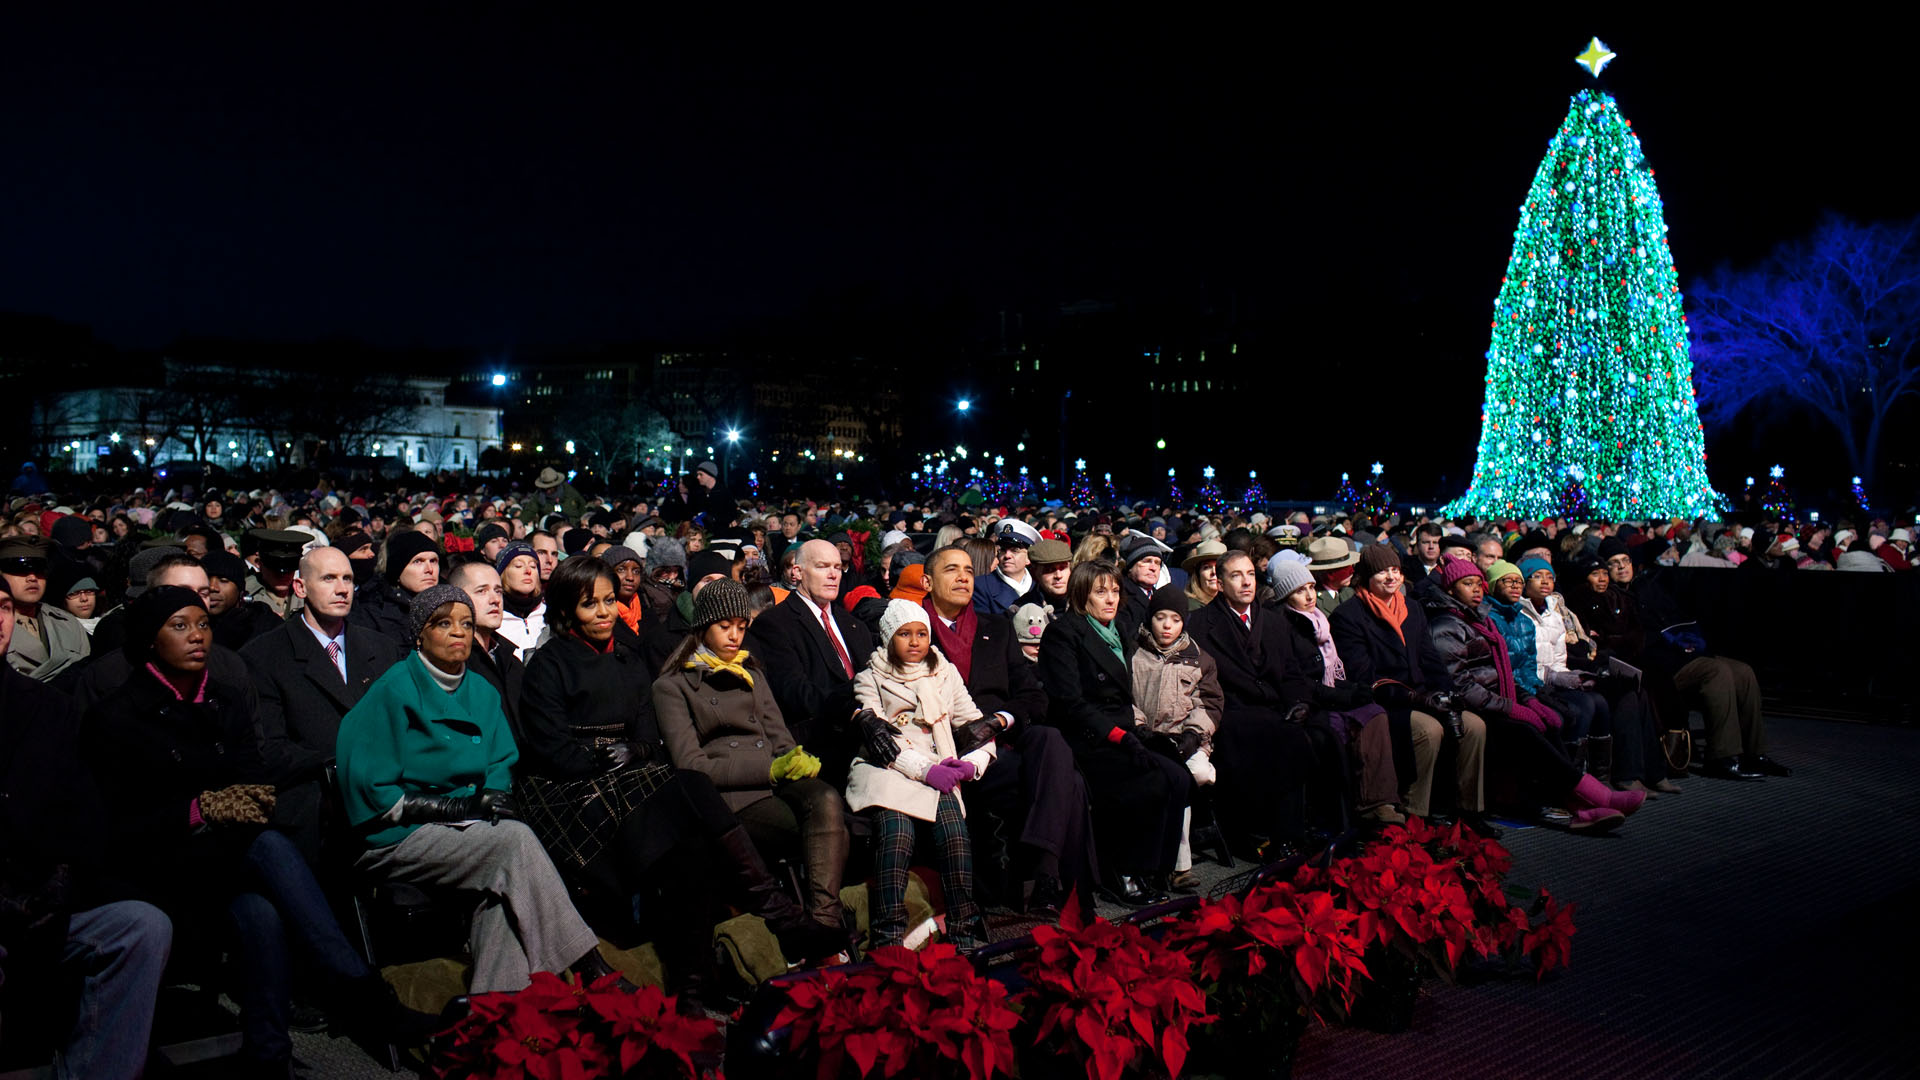 National Christmas Tree Lighting.5 4 3 2 1 The Obama Family Lights The National